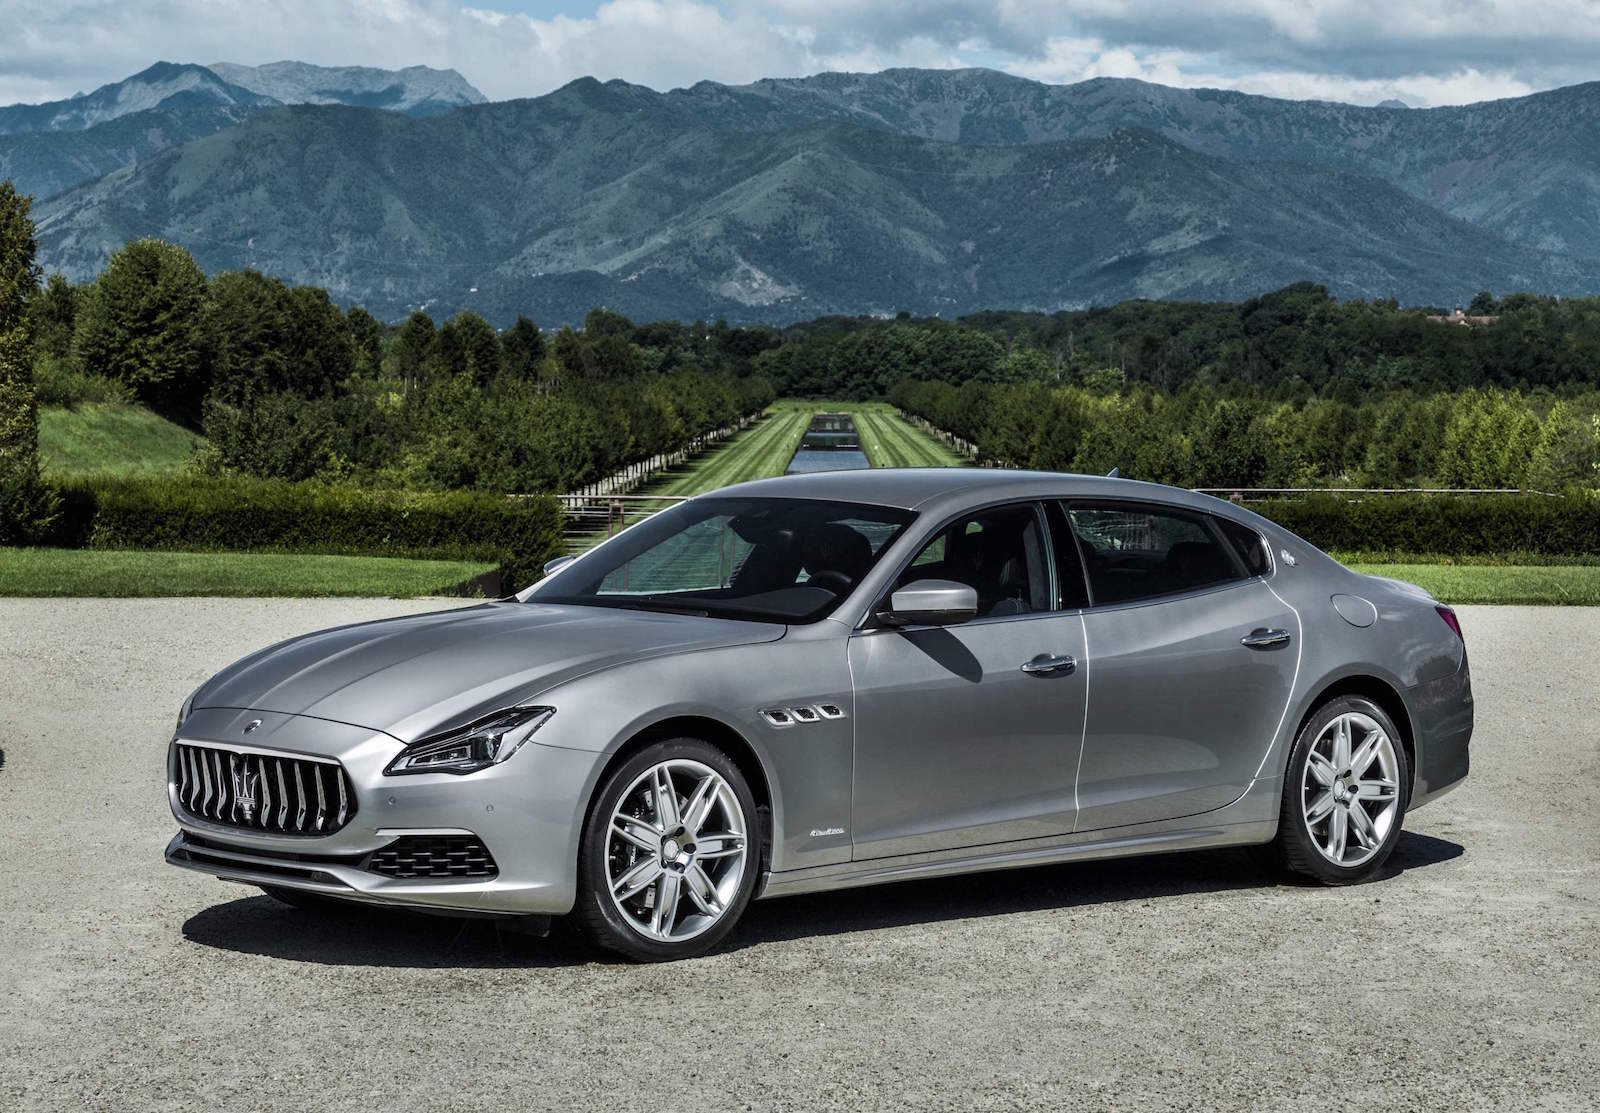 2018 maserati quattroporte update now on sale in australia performancedrive. Black Bedroom Furniture Sets. Home Design Ideas